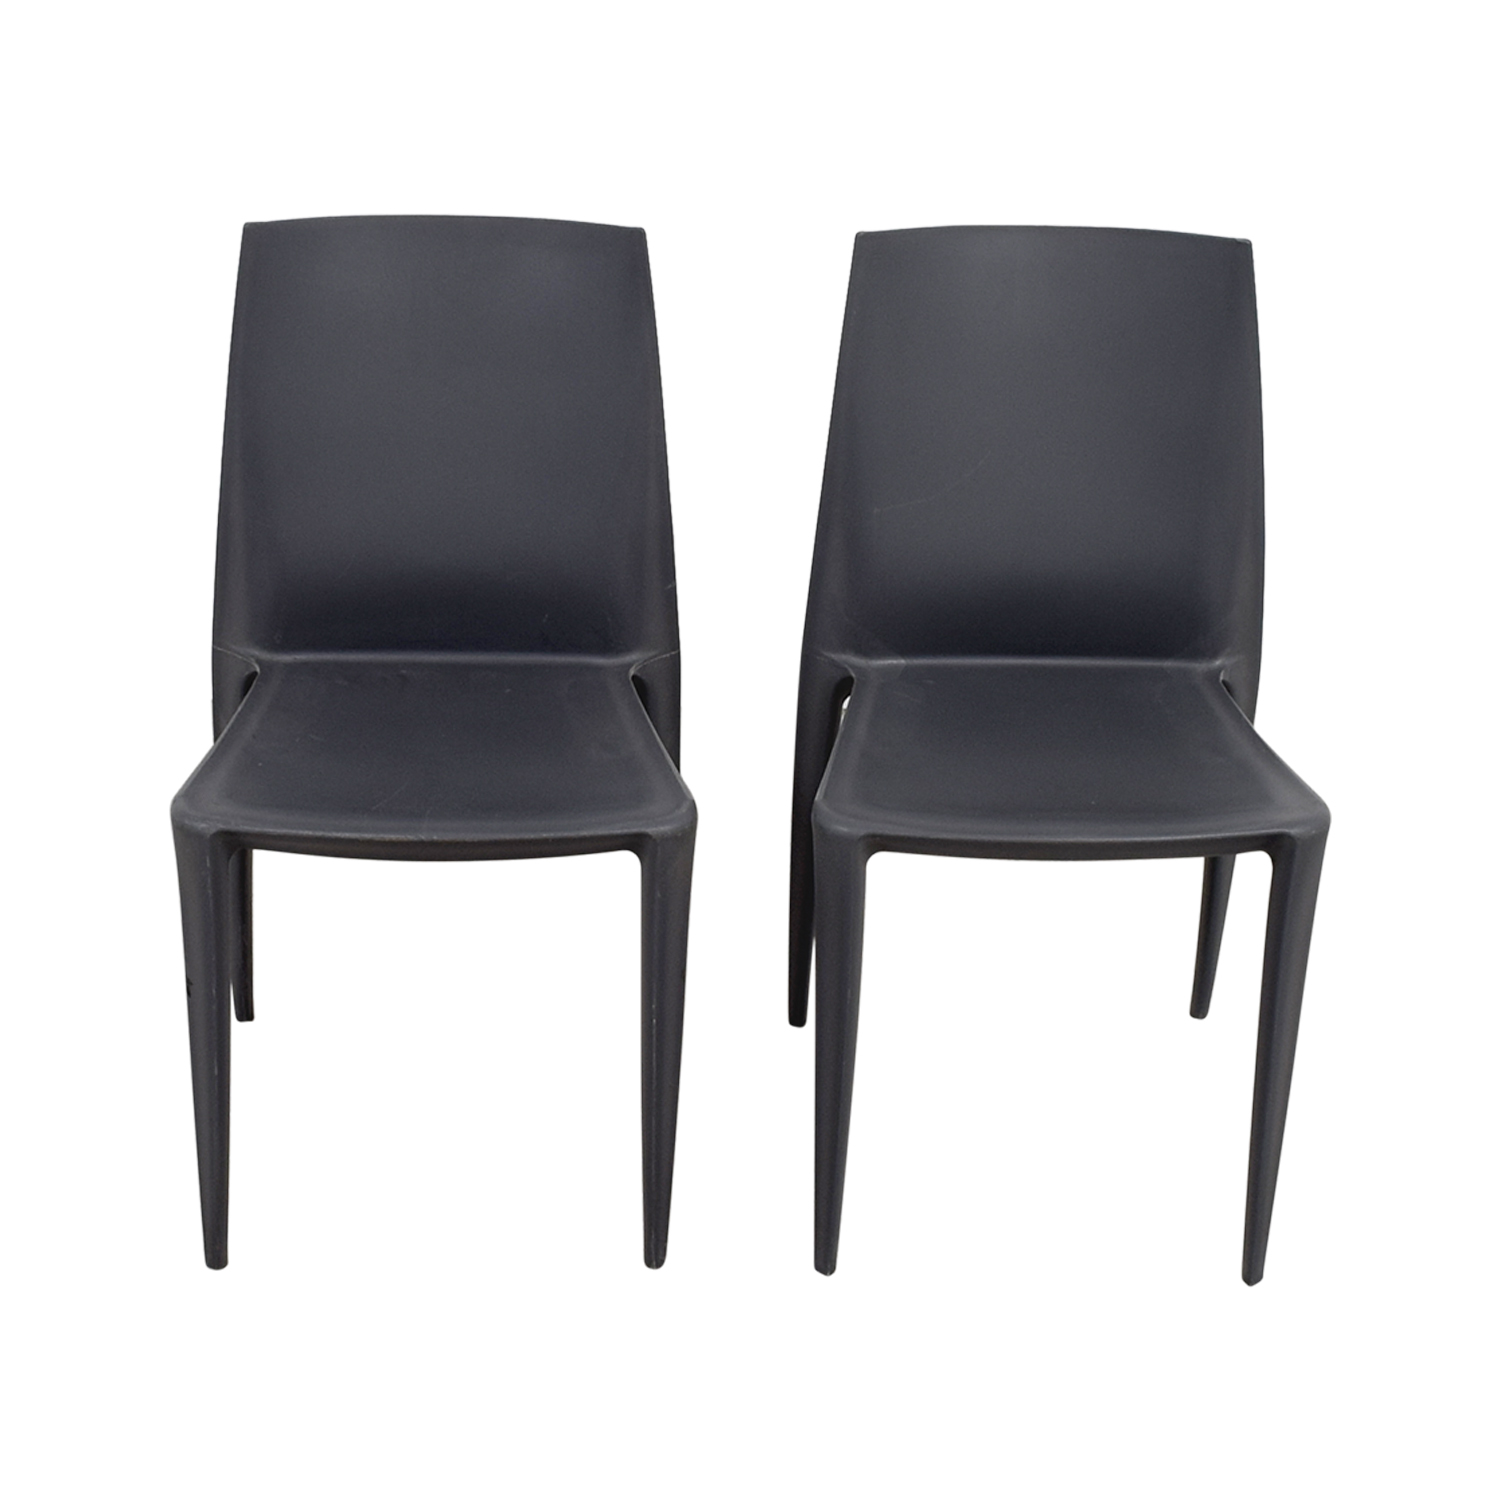 Arty LTD Arty Ltd Accent Chairs used